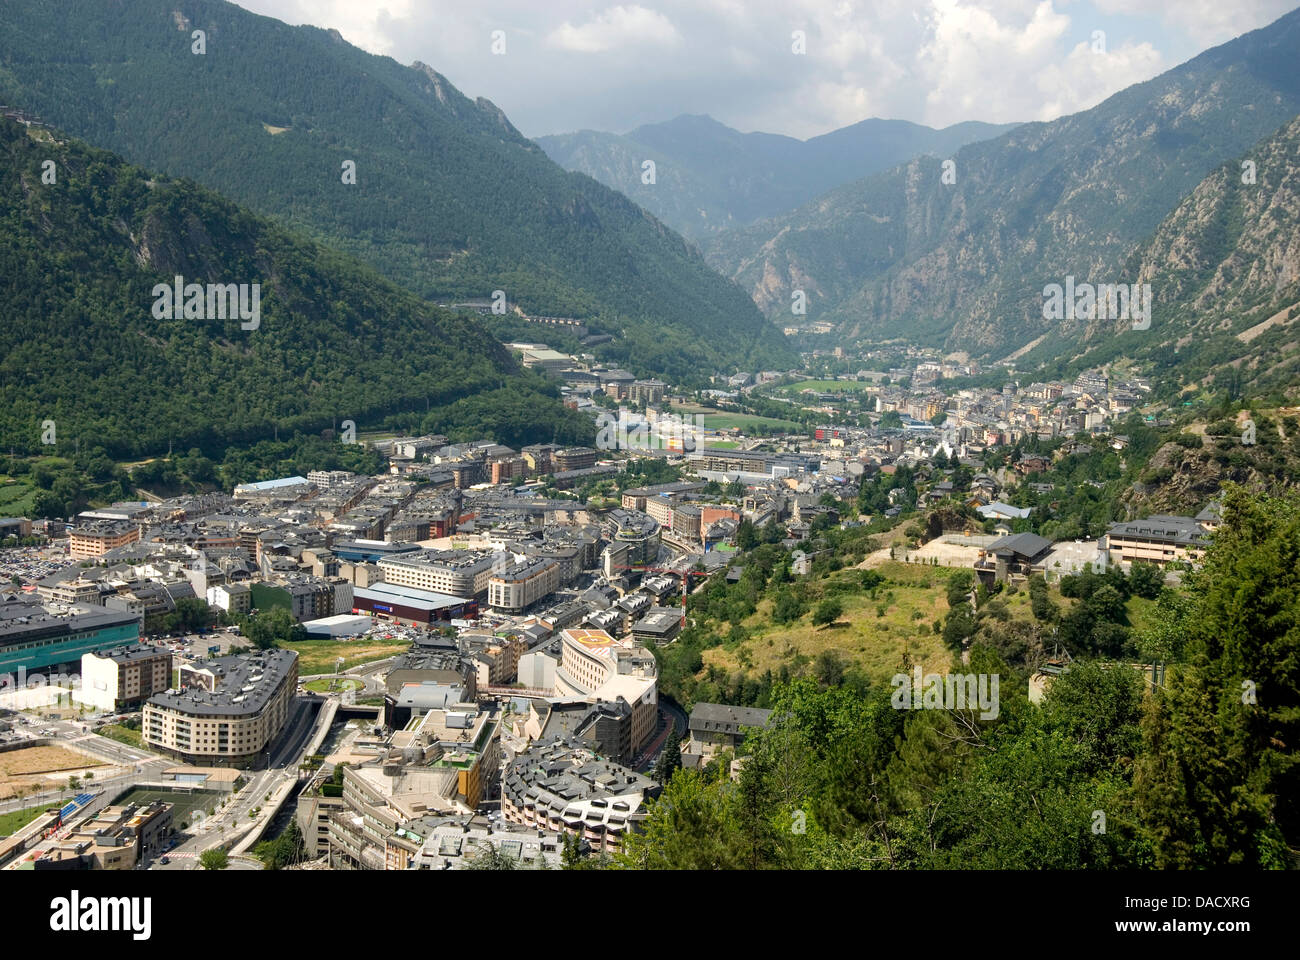 Andorra la Vella, capital city of Andorra state - Stock Image